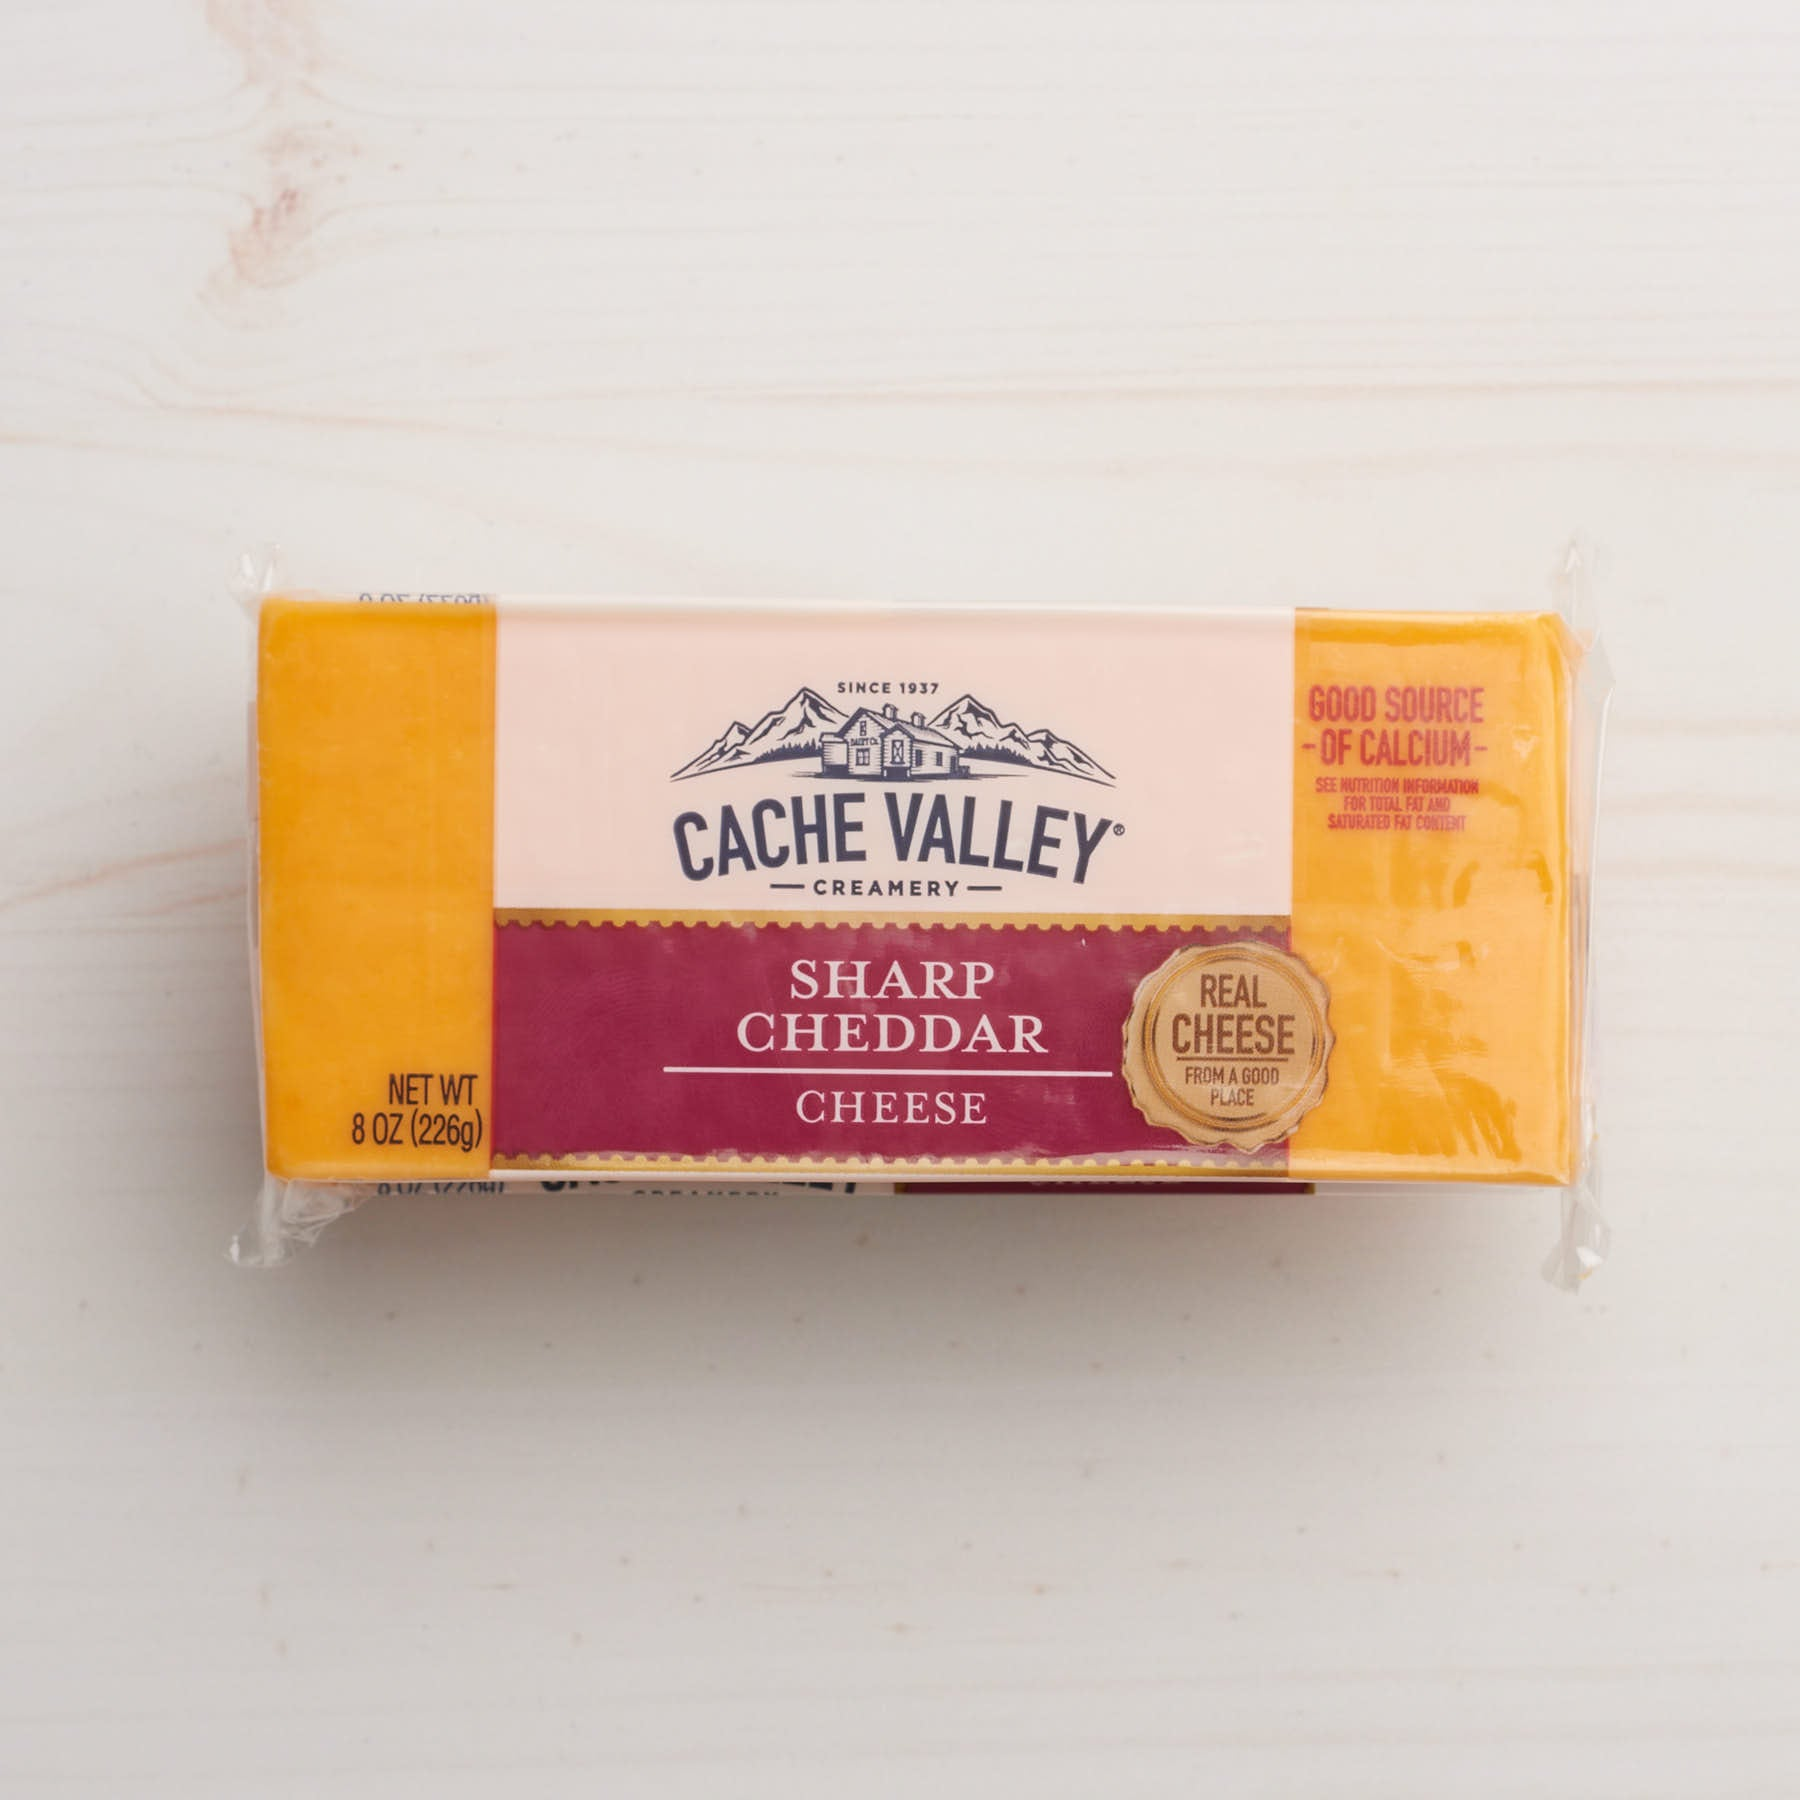 Image of Cache Valley Creamery Sharp Cheddar Cheese